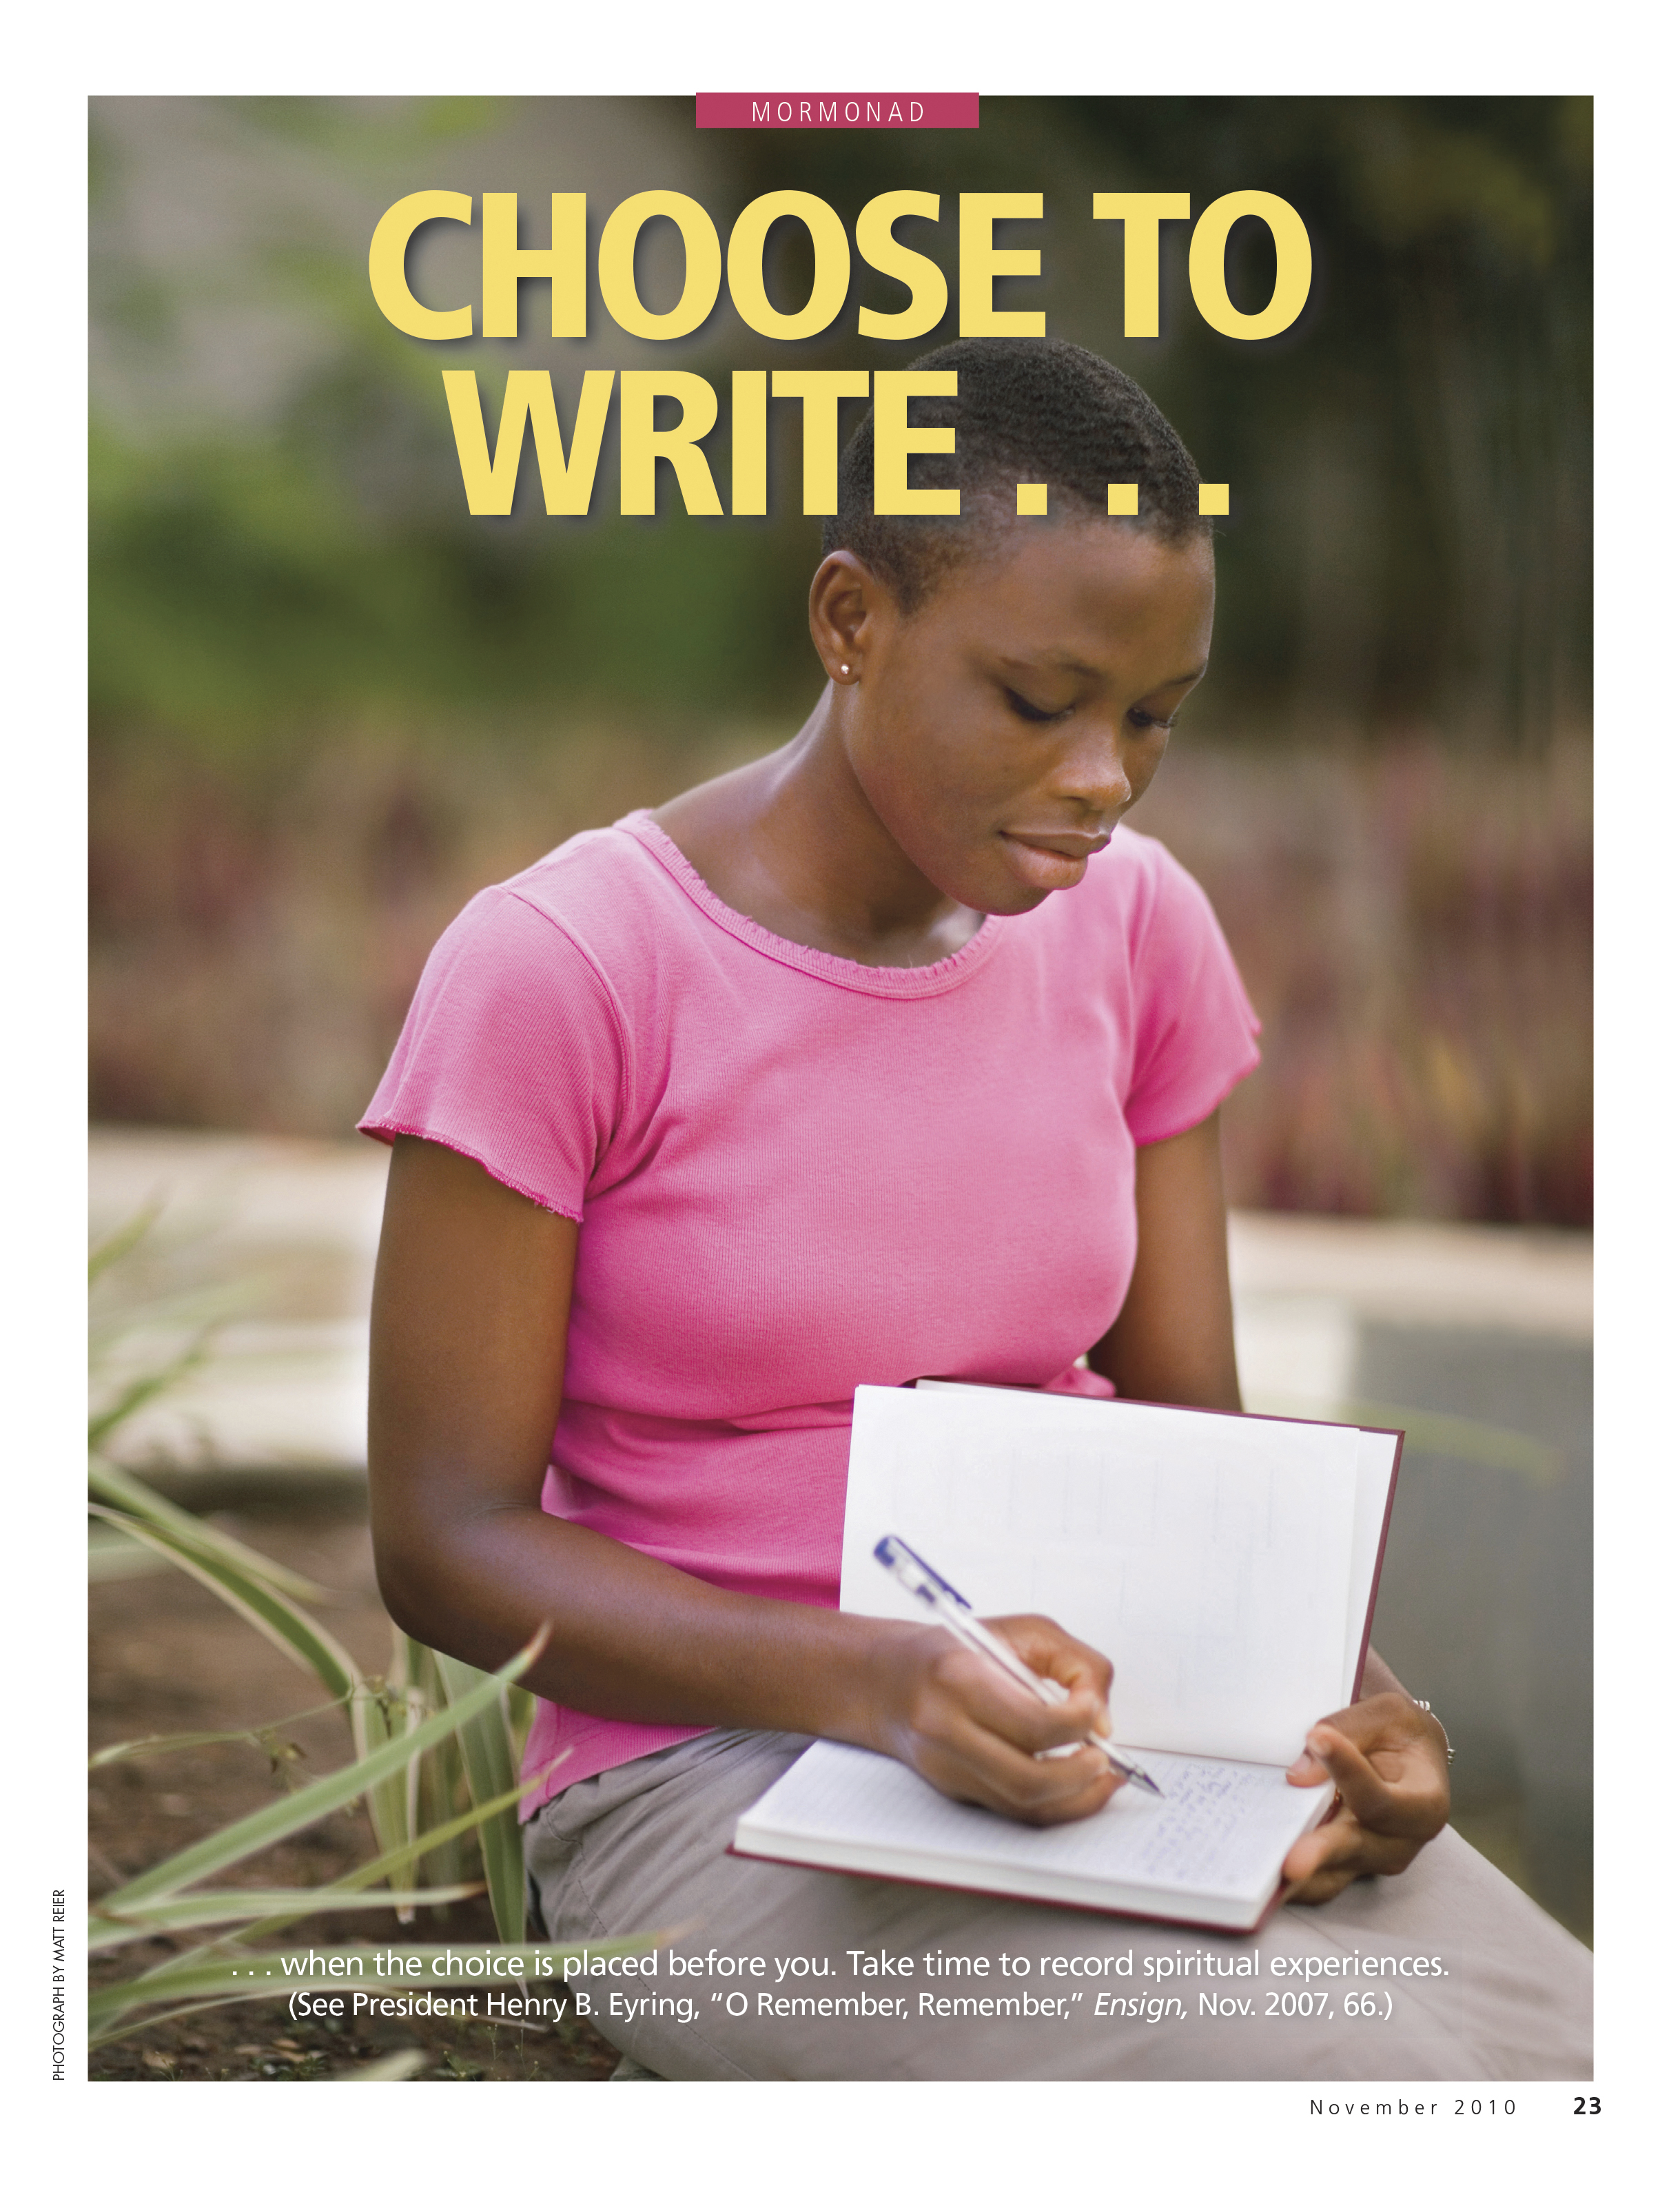 """Choose to Write … when the choice is placed before you. Take time to record spiritual experiences. (See President Henry B. Eyring, """"O Remember, Remember,"""" Ensign, Nov. 2007, 66.) Nov. 2010 © undefined ipCode 1."""